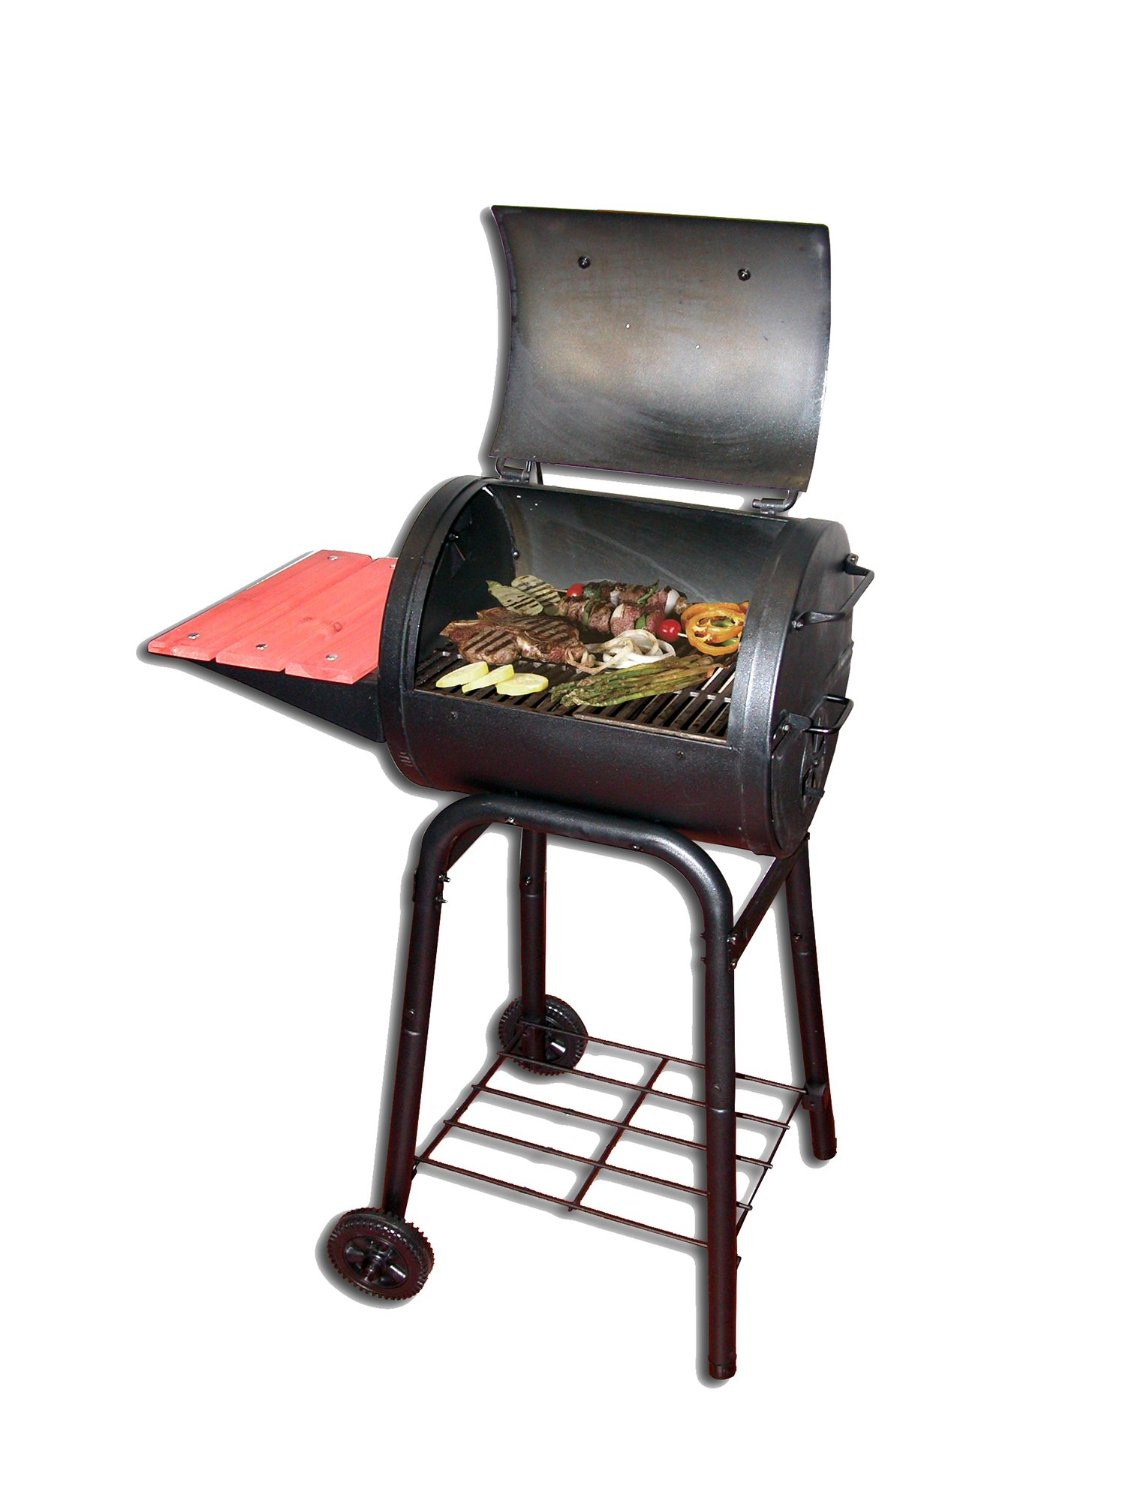 Char-Griller Patio Pro™ 1515 BBQ Grill